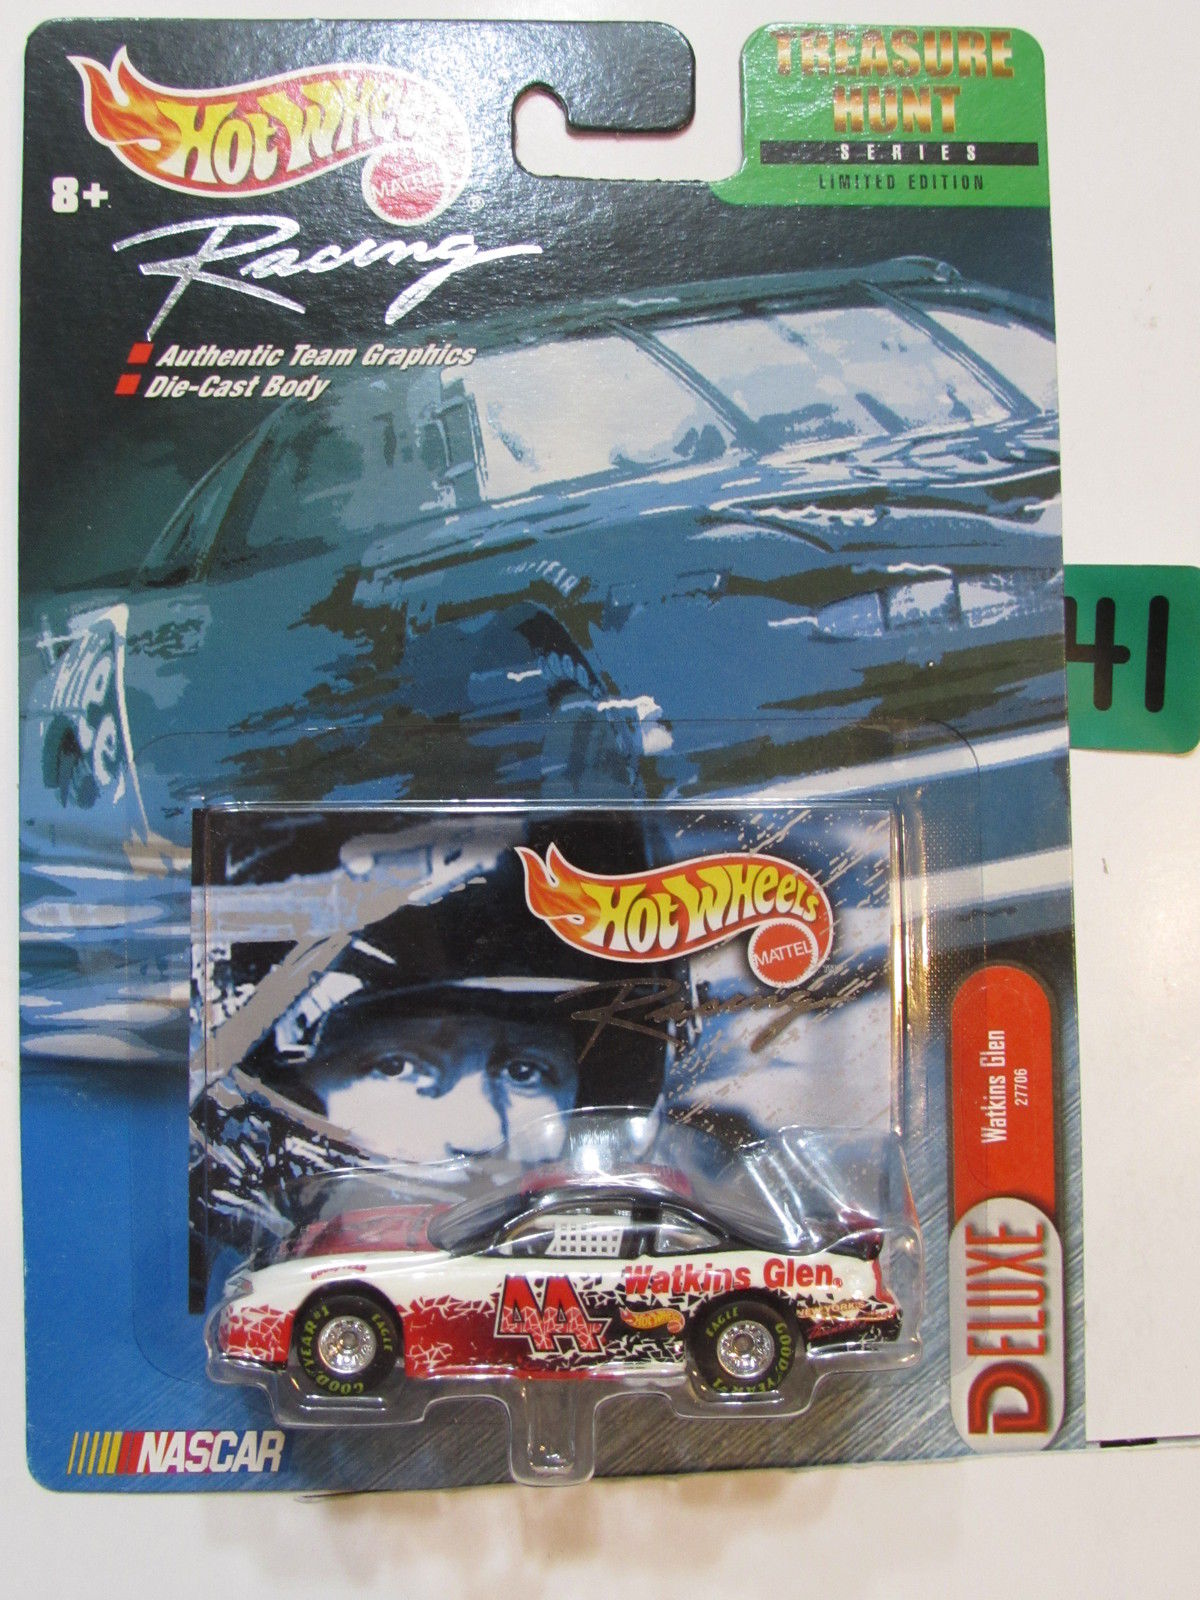 HOT WHEELS 1999 RACING NASCAR DELUXE WATKINS GLEN - TREASURE HUNT SERIES